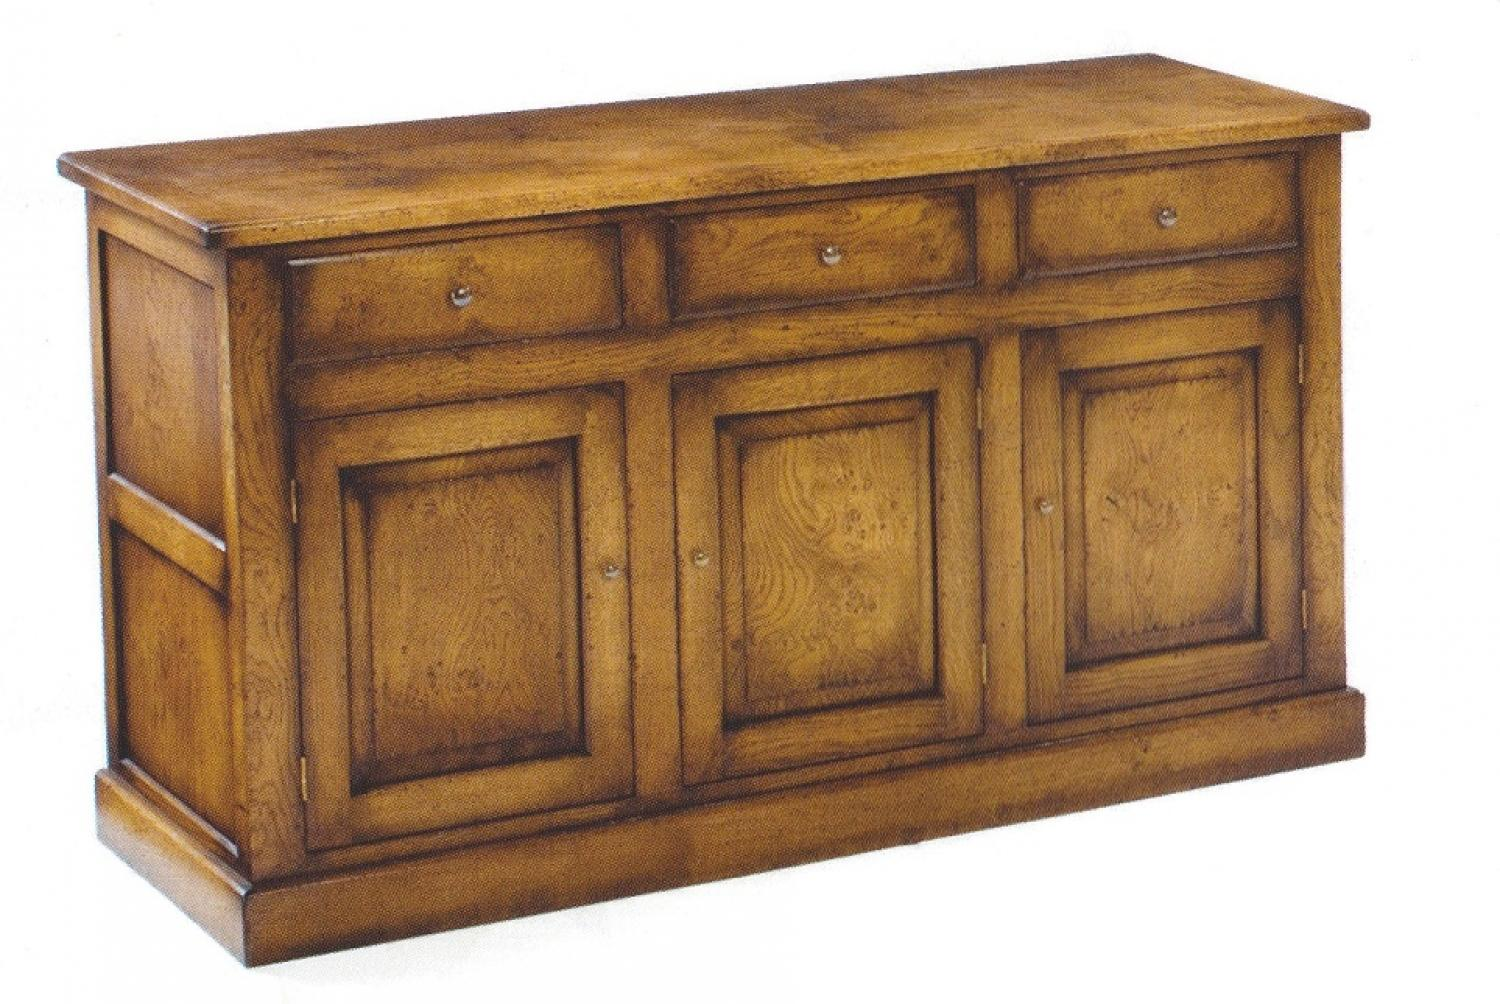 Oak Dresser Base - three door Dorset